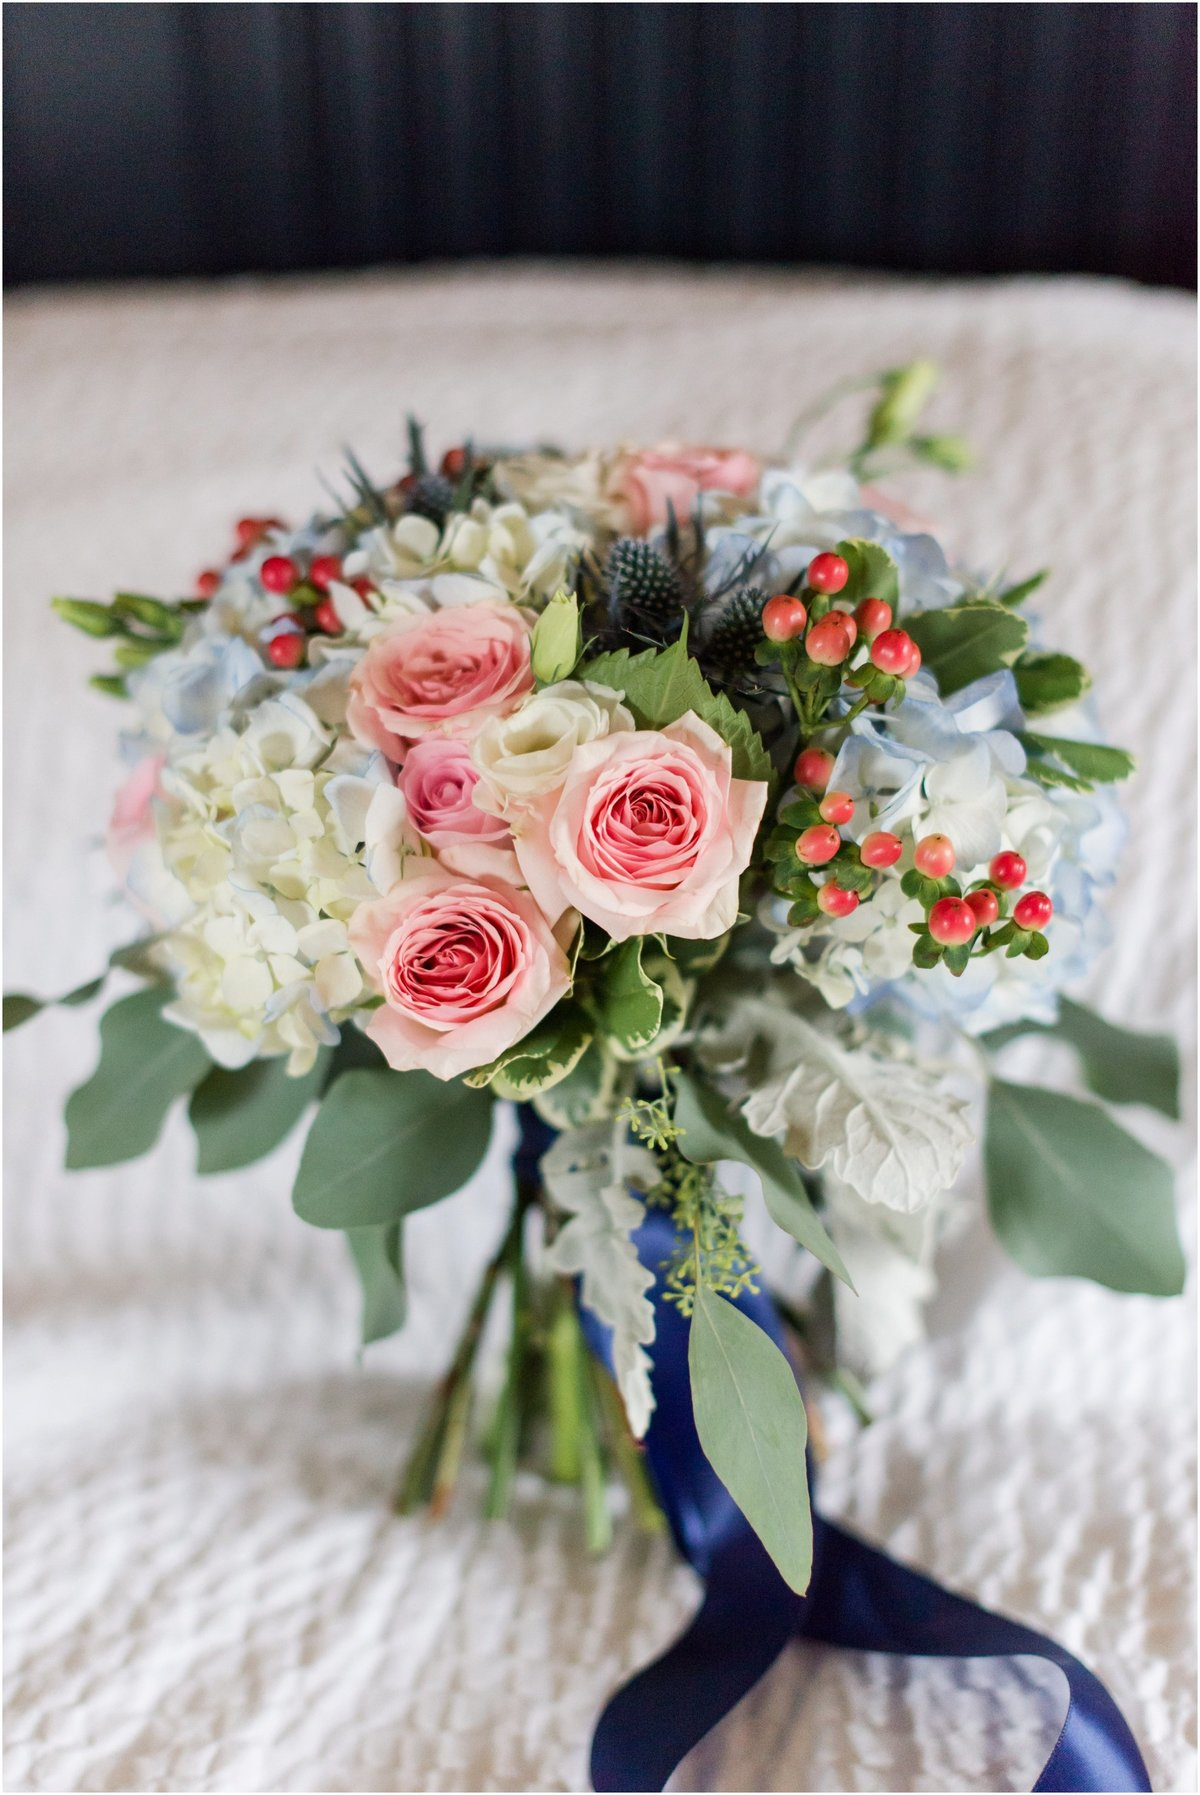 Pink roses, white and blue hydrangea, berries and thistle , navy blue ribbon